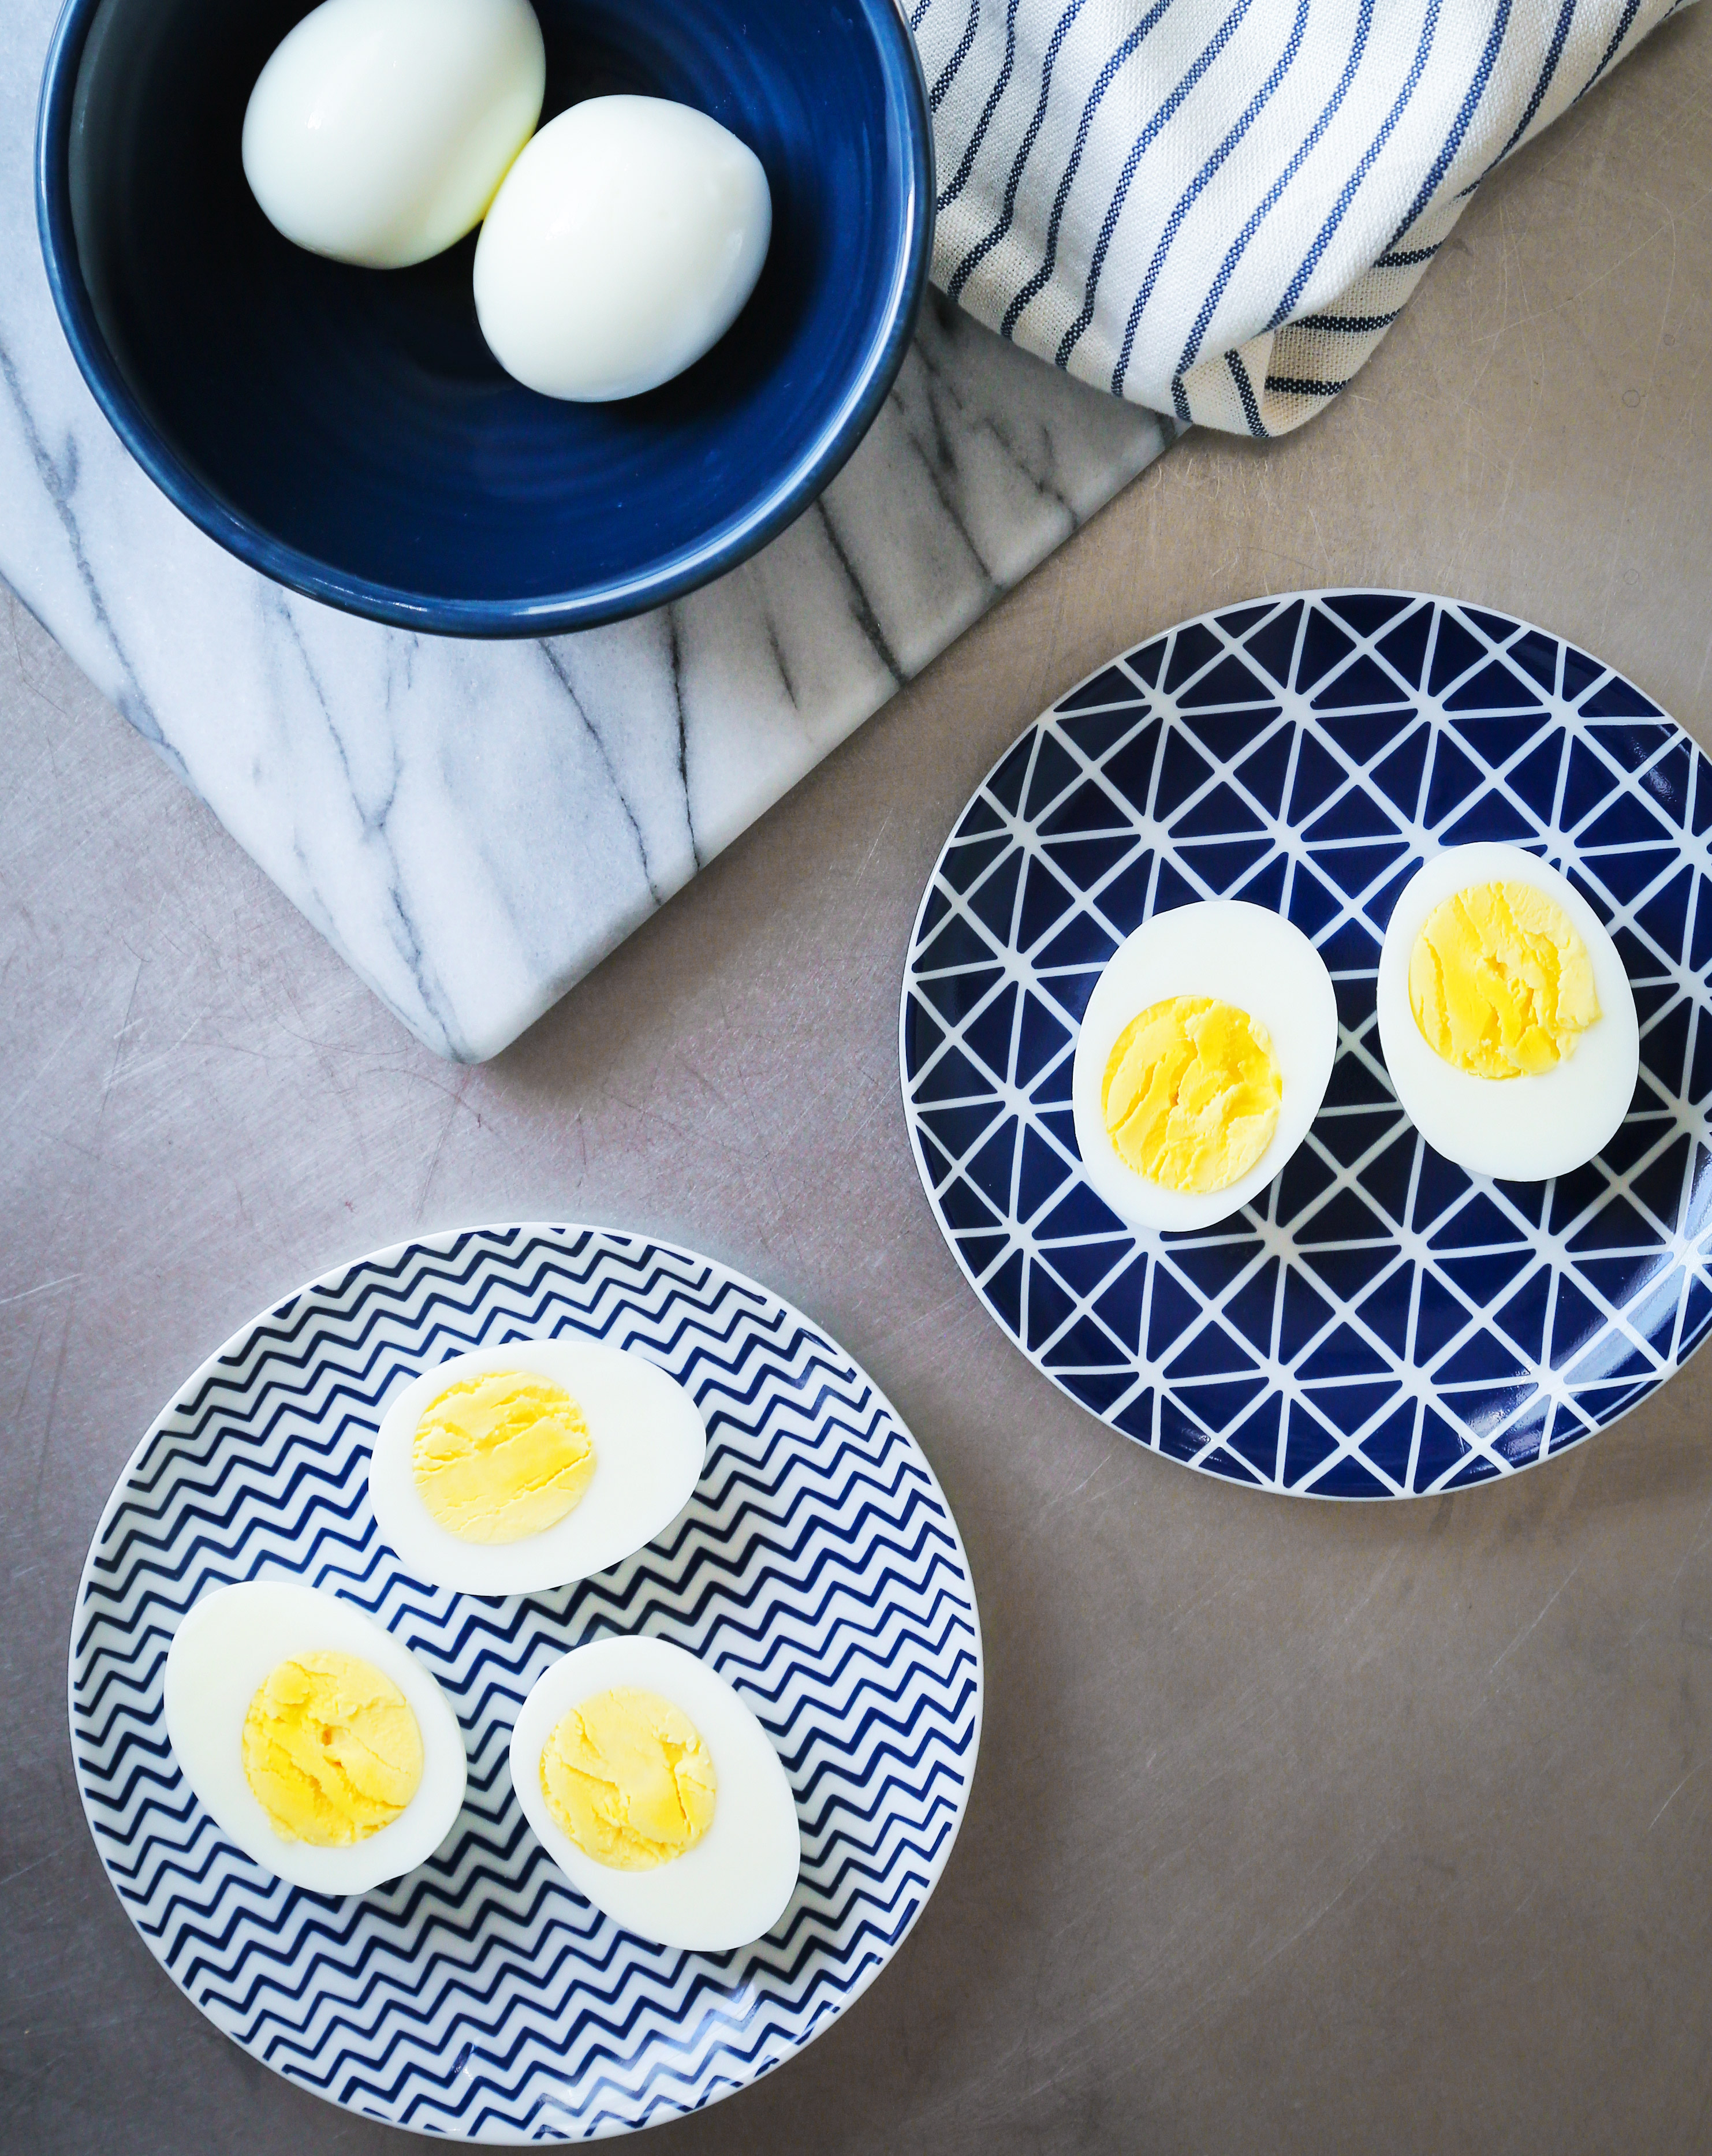 Cooking Hardboiled Eggs Is One Of Those Kitchen Basics That I've Had The  Hardest Time Mastering After Extensive Recipe Testing, I'vee To The